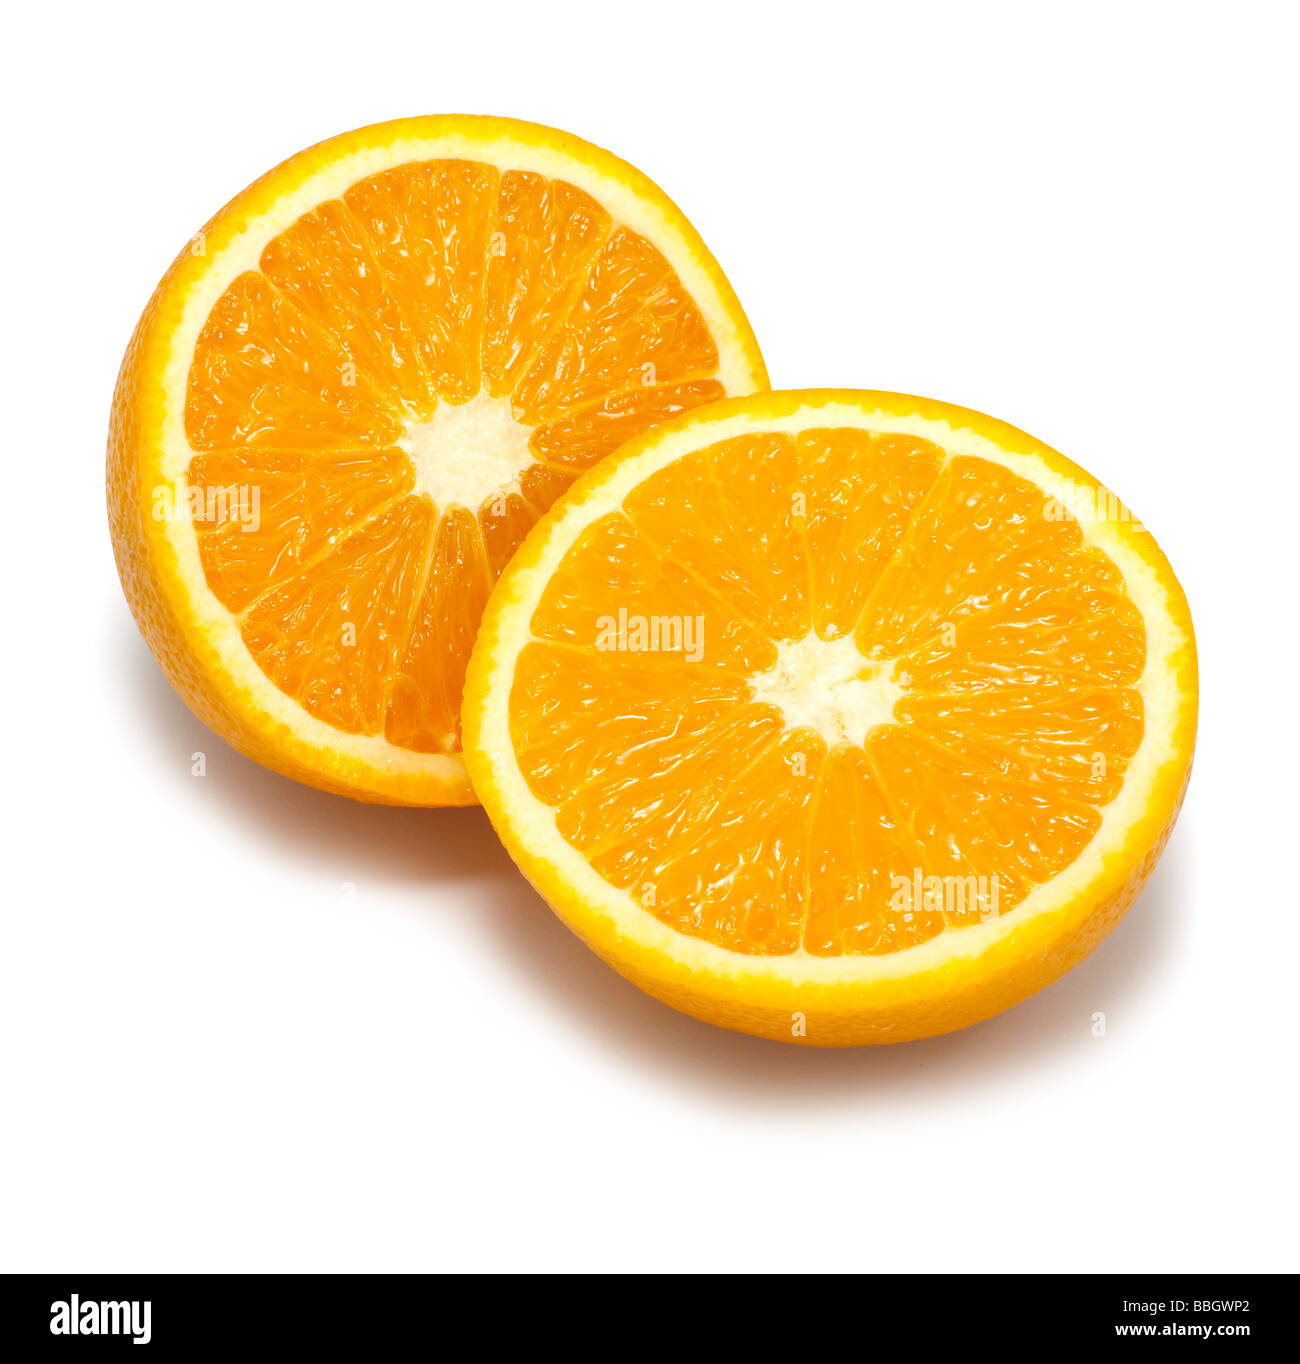 Half oranges cut out on a white background - Stock Image